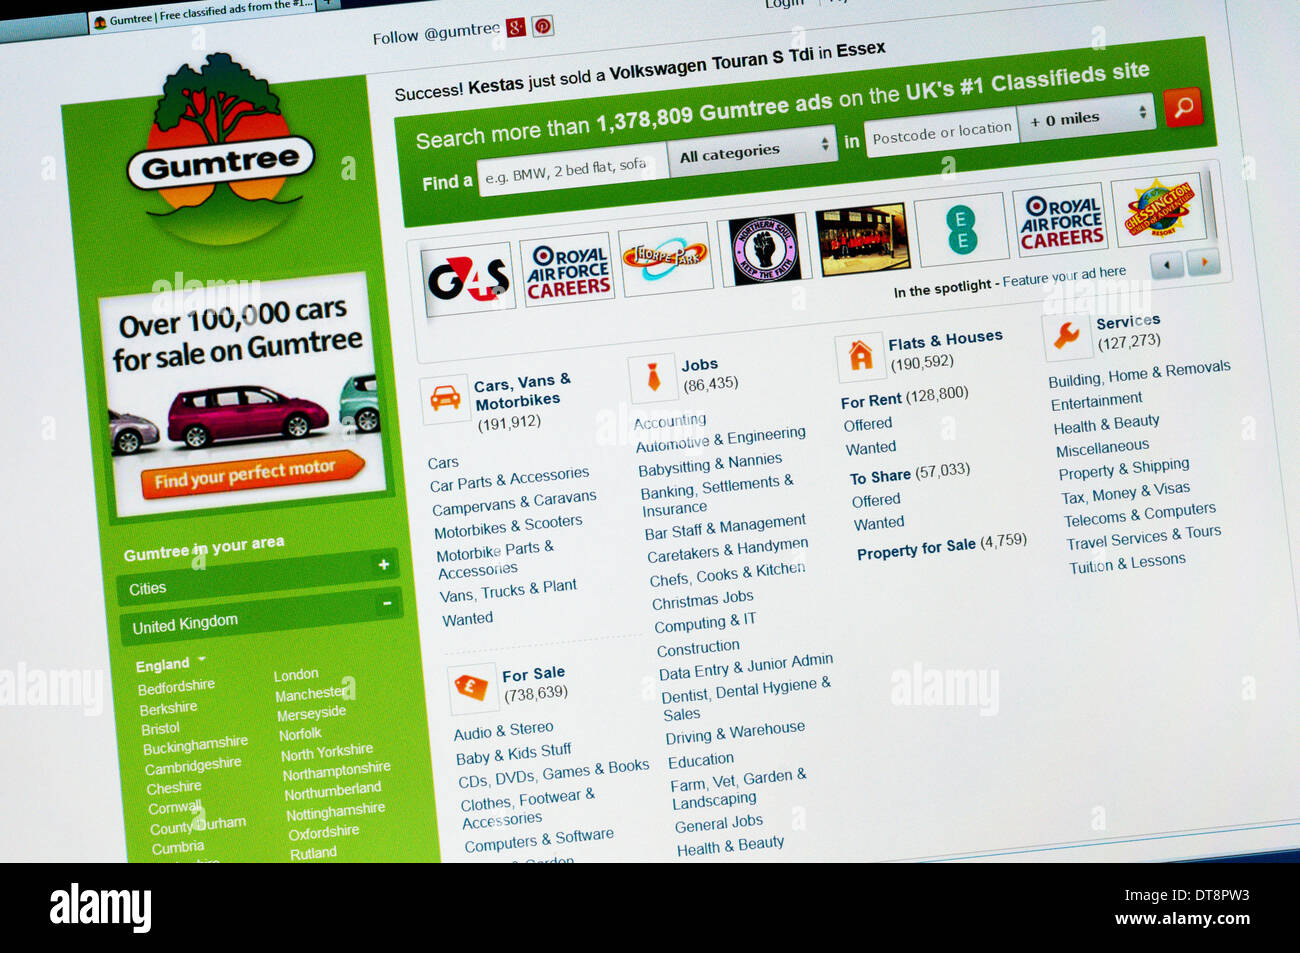 Gumtree Stock Photos & Gumtree Stock Images - Alamy